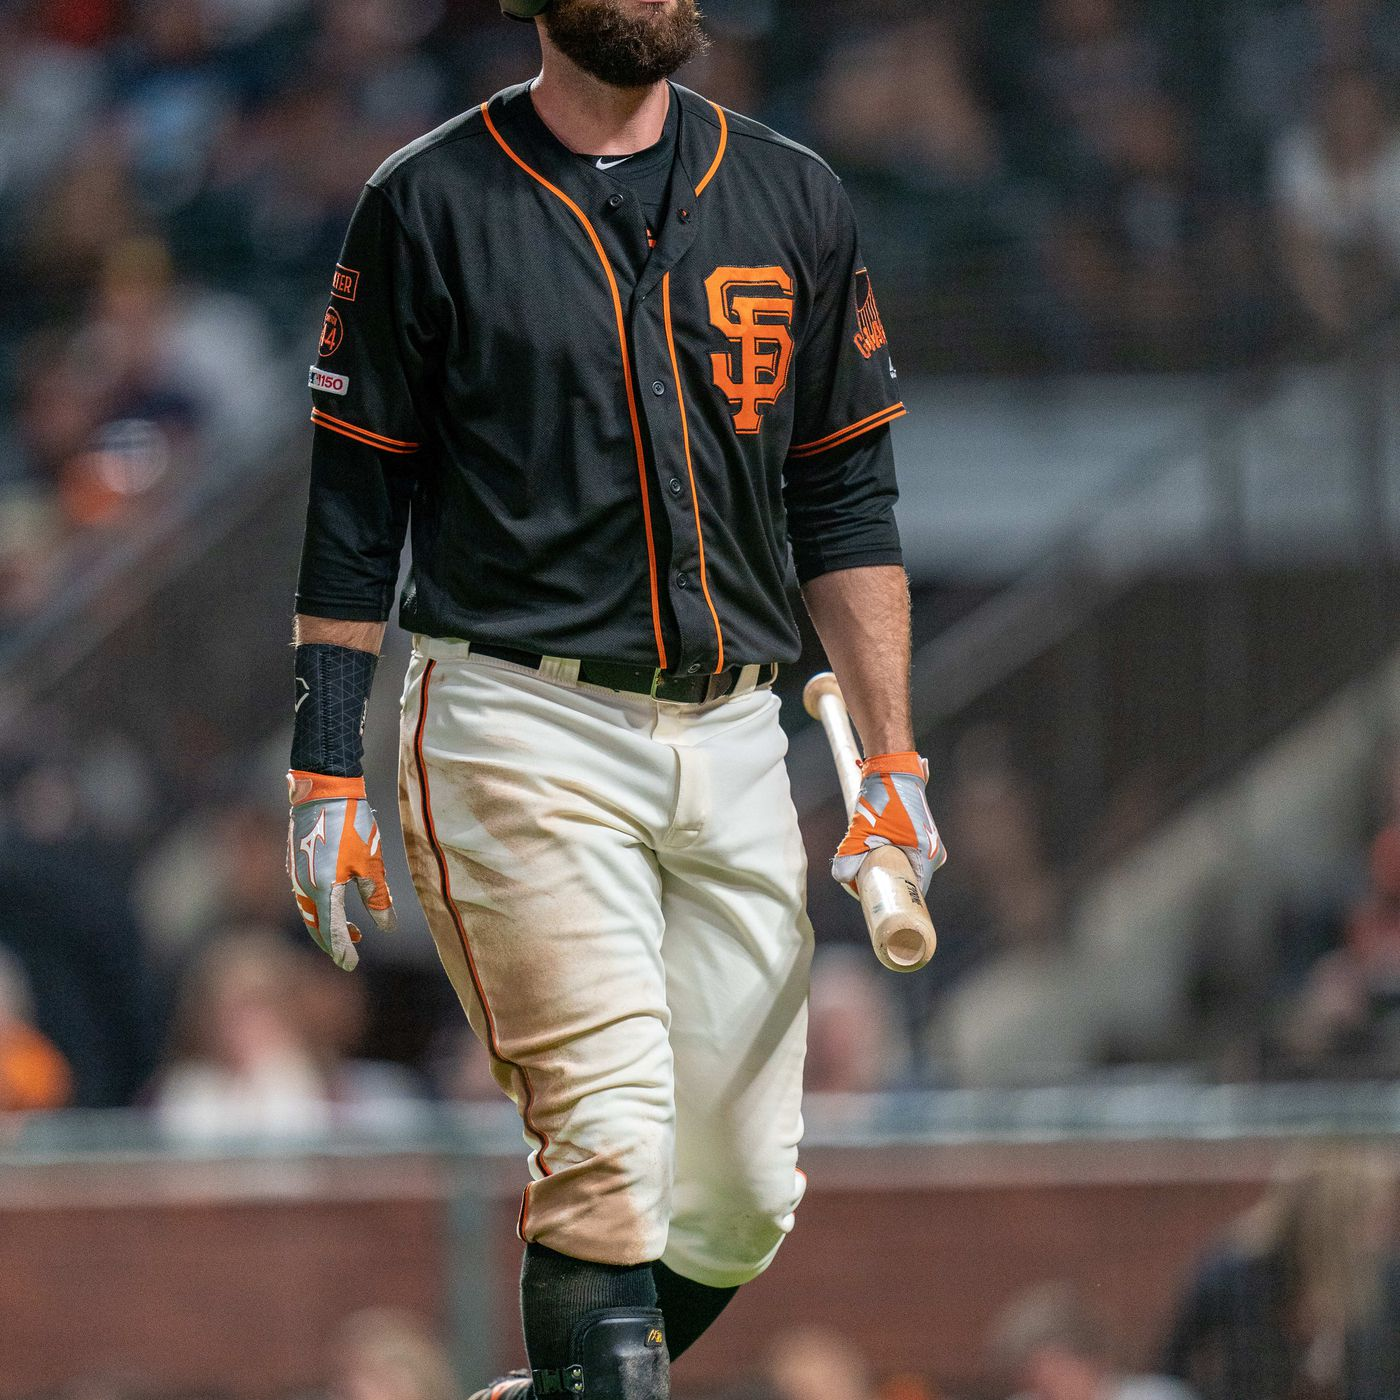 Brandon Belt has three things in common with Pablo Sandoval